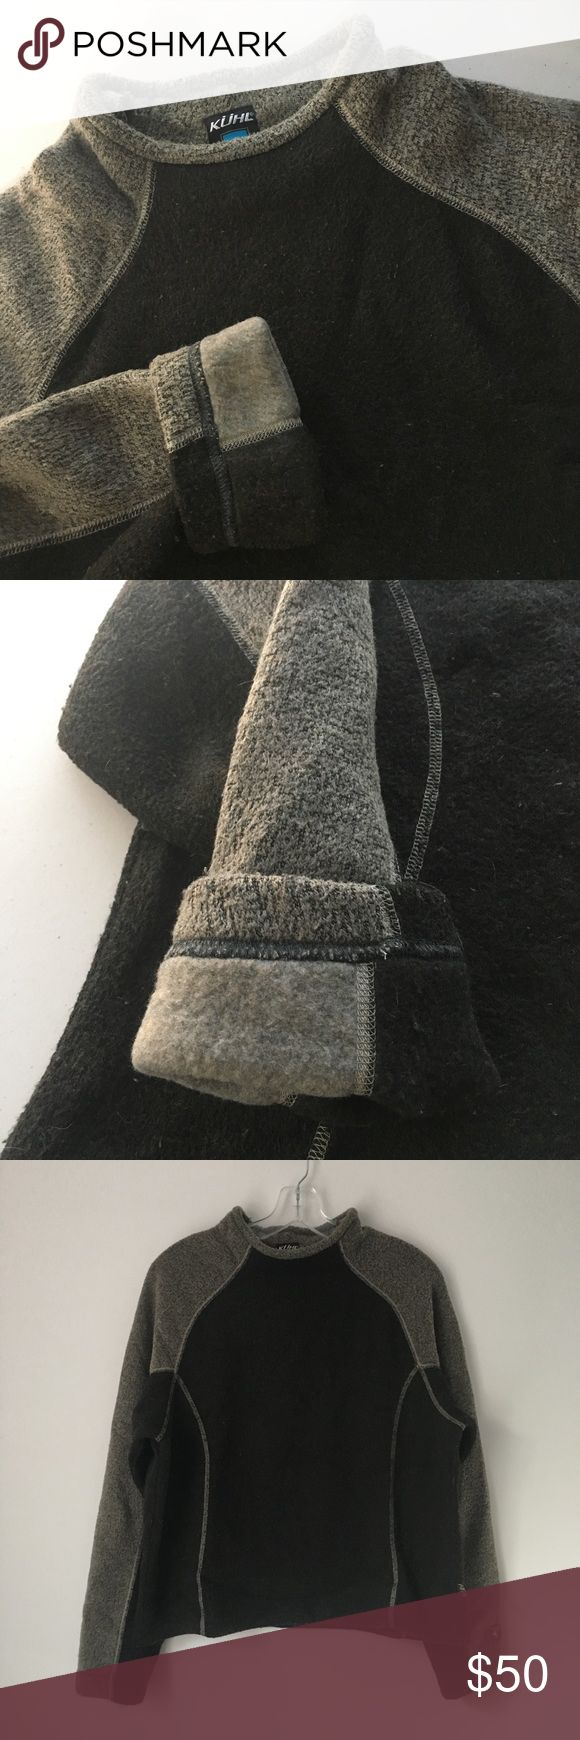 "RARE ULTRA SOFT FLEECE SWEATER SWEATSHIRT PULLOVER GORGEOUS RARE Vtg Vintage KUHL Dark Neutral Two-Tone ULTRA SOFT Thick Fleece Knit High Mock Neck Turtleneck Pullover Sweater Sweatshirt Shirt Top Fall Autumn Winter Goth Punk Boho Grunge || Brand new || Never used || NO flaws. Natural/INTENTIONAL fuzzy+bobbled texture. || Size: Tagged as women's XL. (Could work for XS, Small, Medium, Large or XL depending on desired fit.) || Chest - 22.5"" across • Length (shoulder to bottom hem) - roughly…"